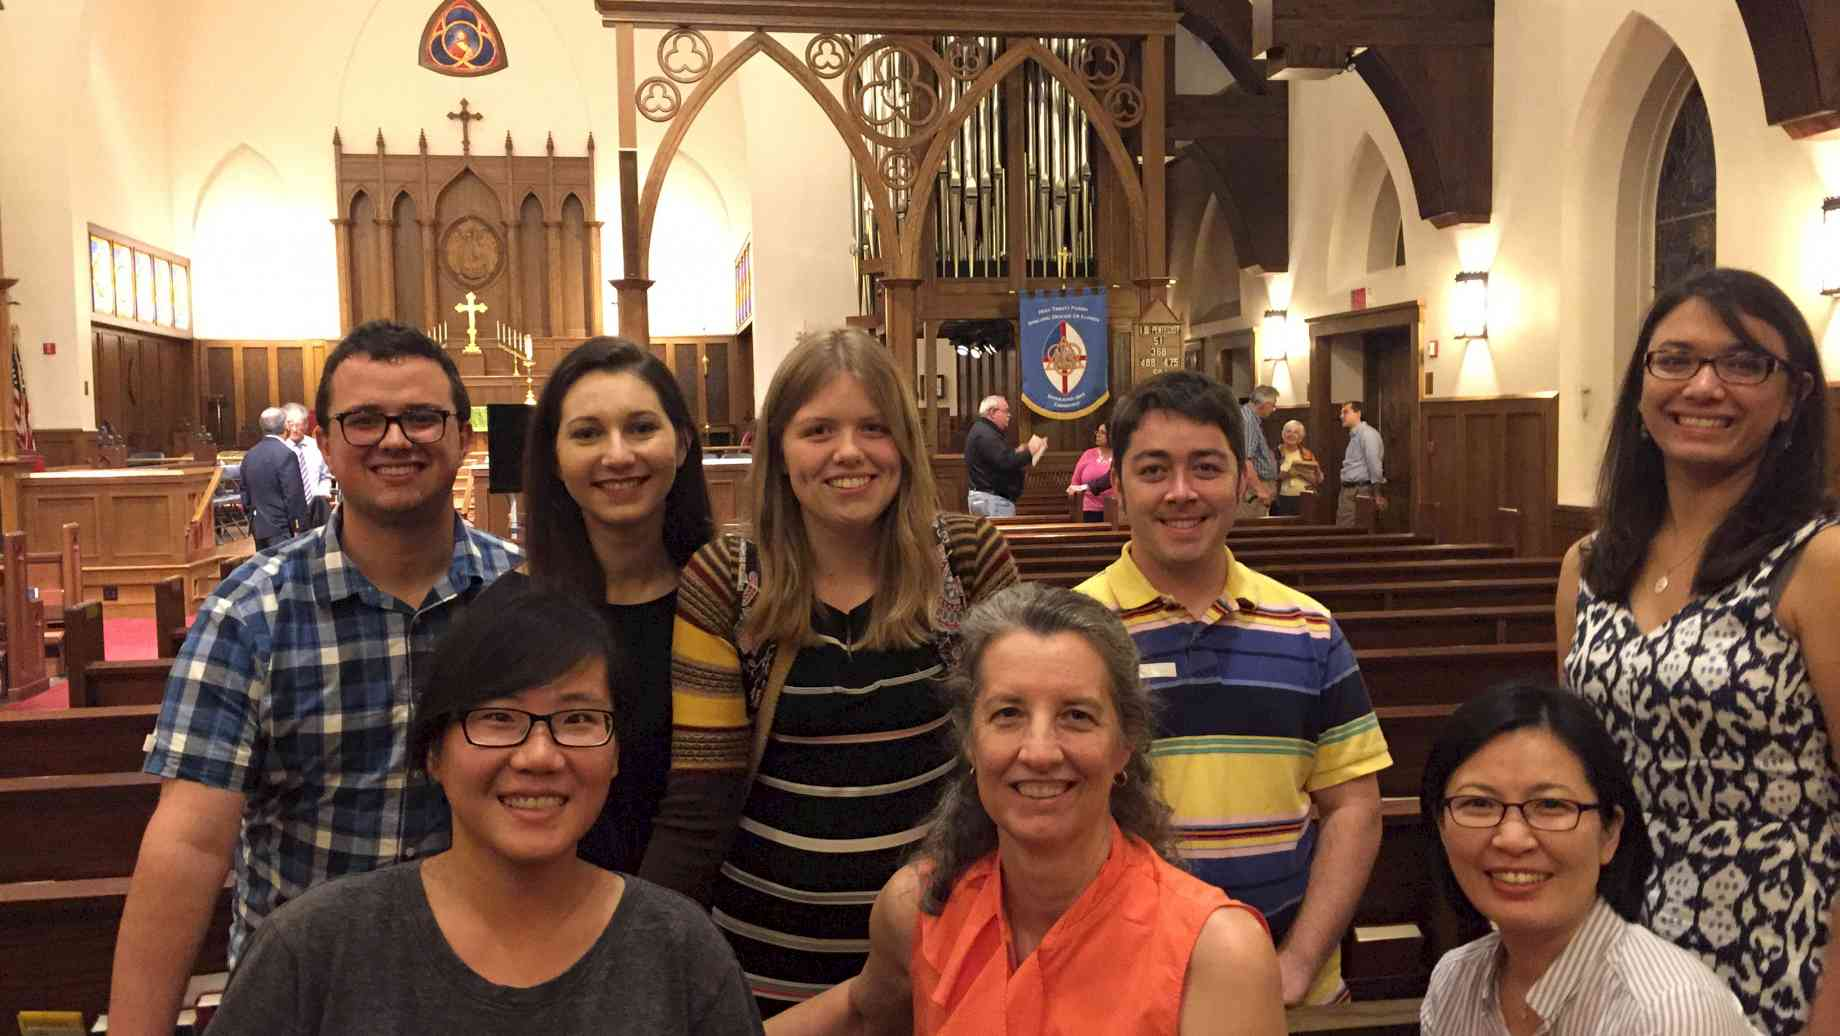 Current and former UF studio members attend a recital at Holy Trinity, 9-23-16